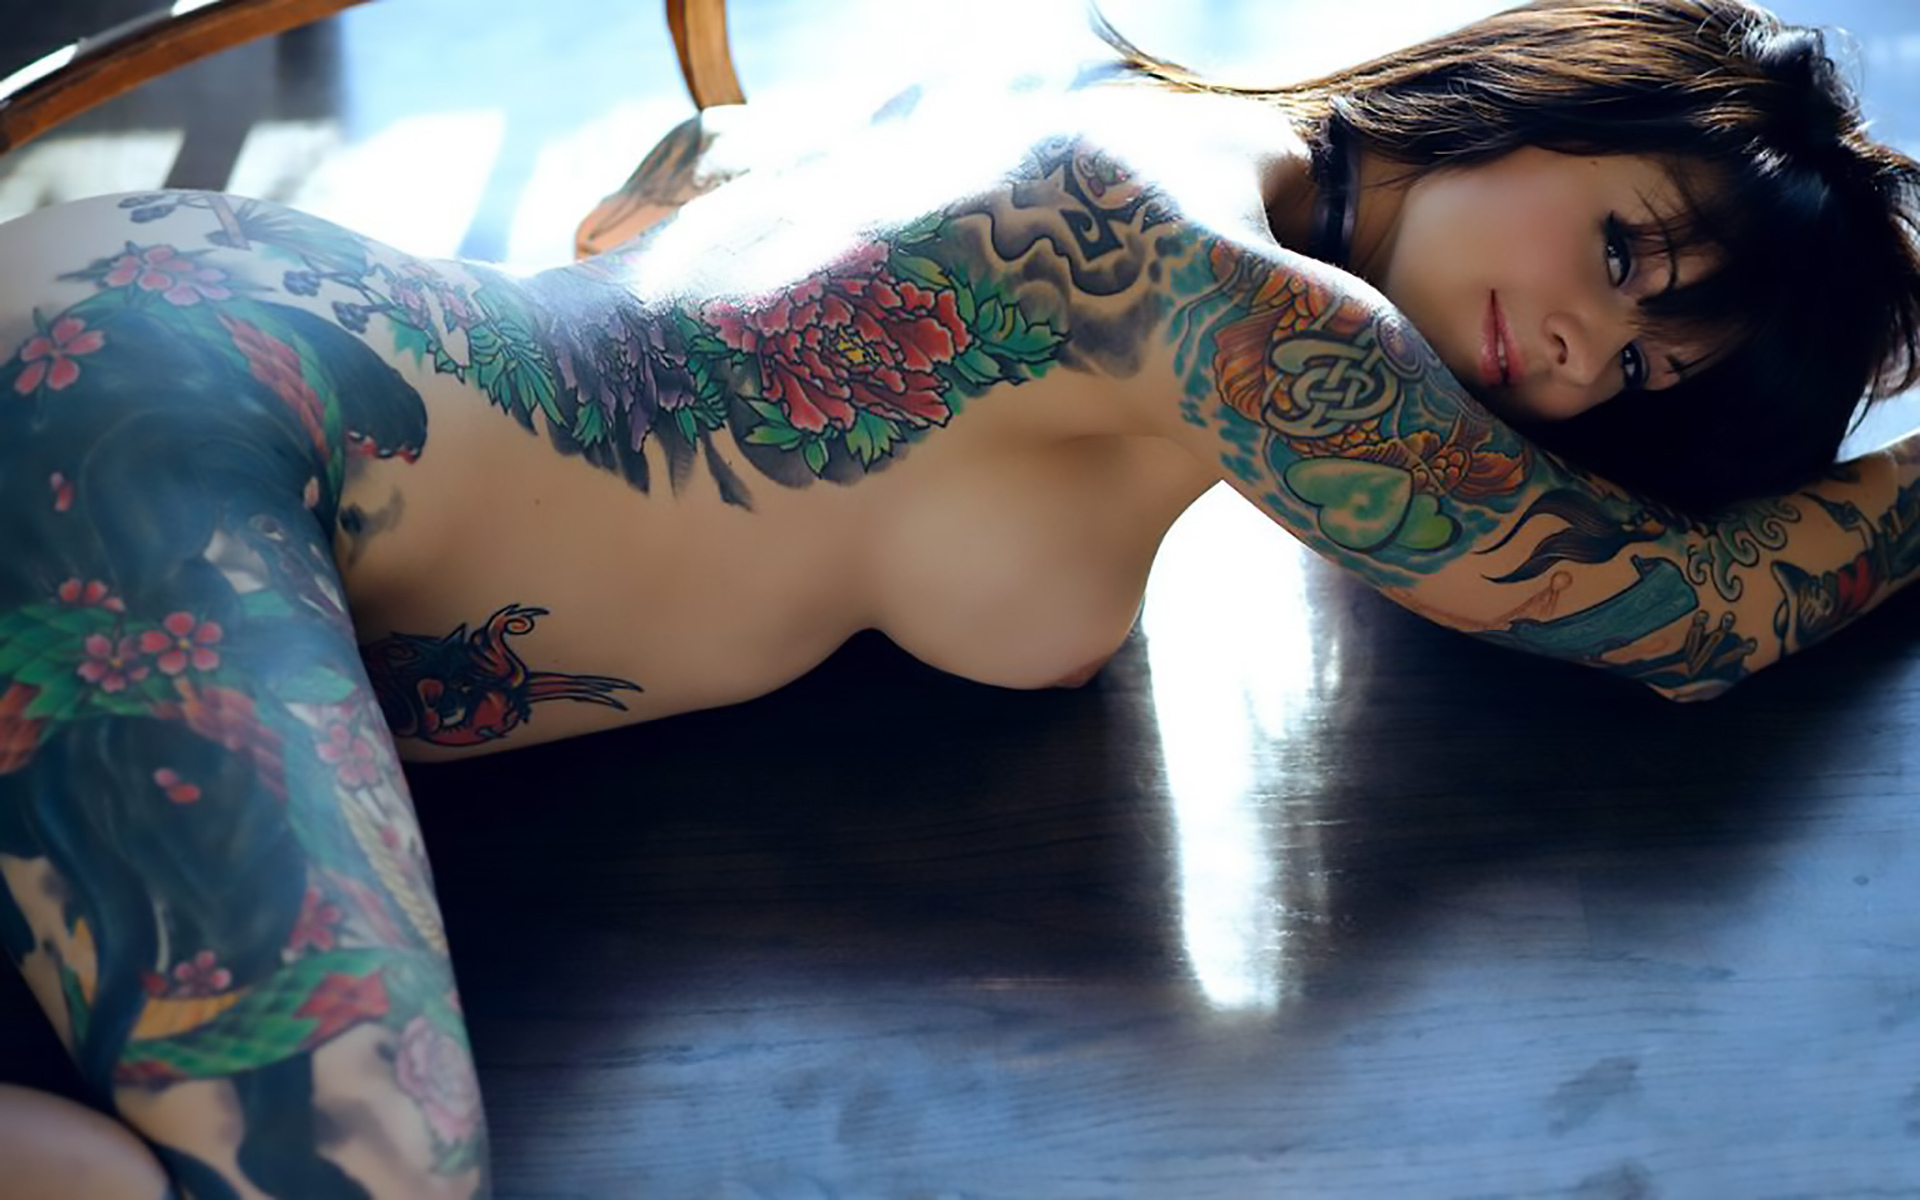 sexy-hot-naked-girl-tattoos-pinay-oral-sex-photos